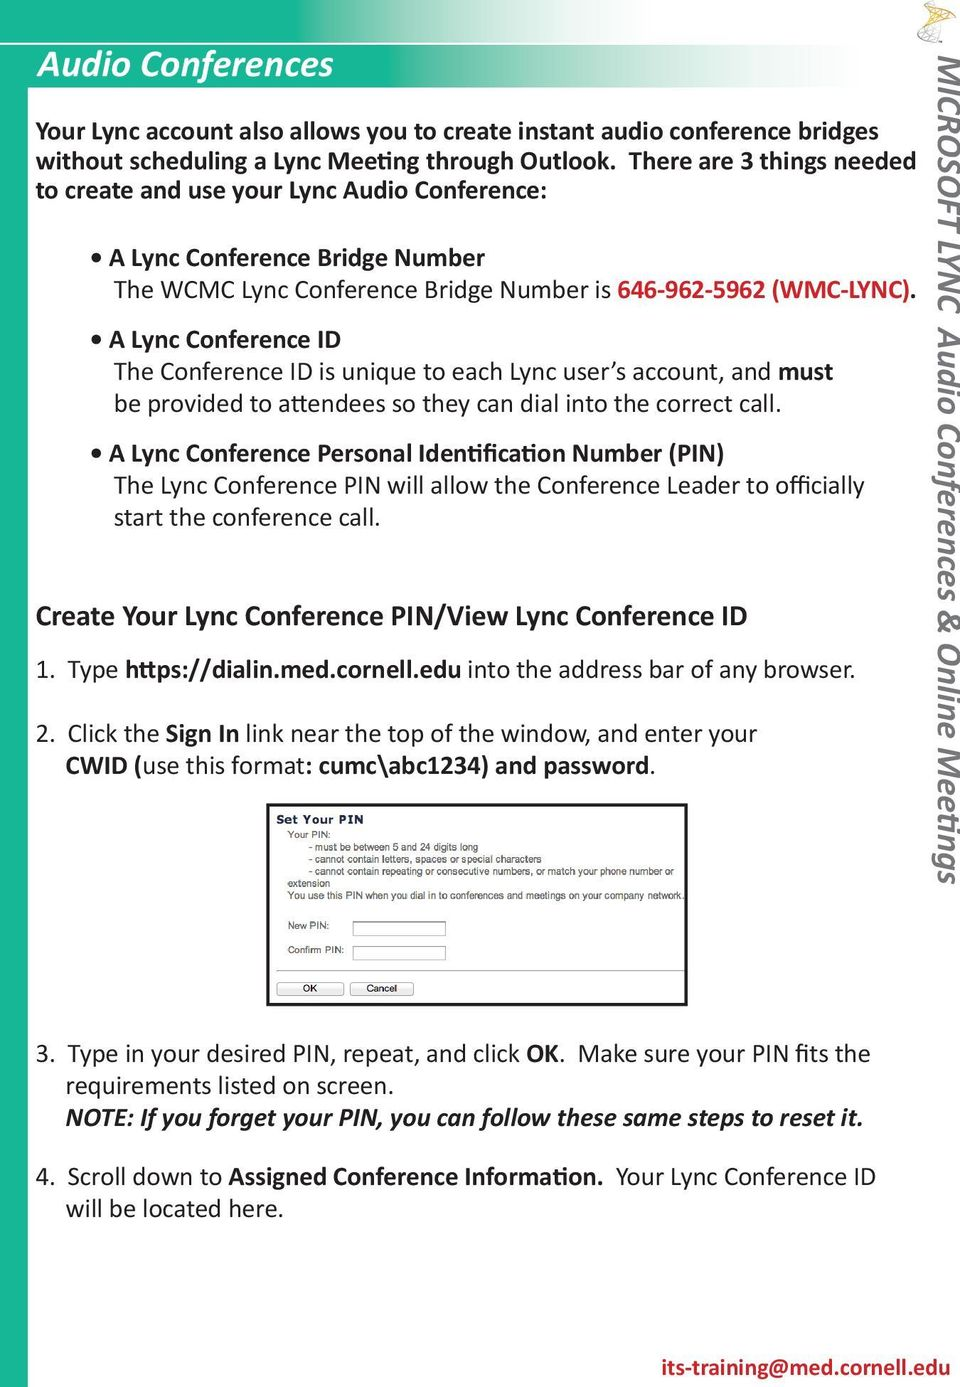 A Lync Conference ID The Conference ID is unique to each Lync user s account, and must be provided to attendees so they can dial into the correct call.